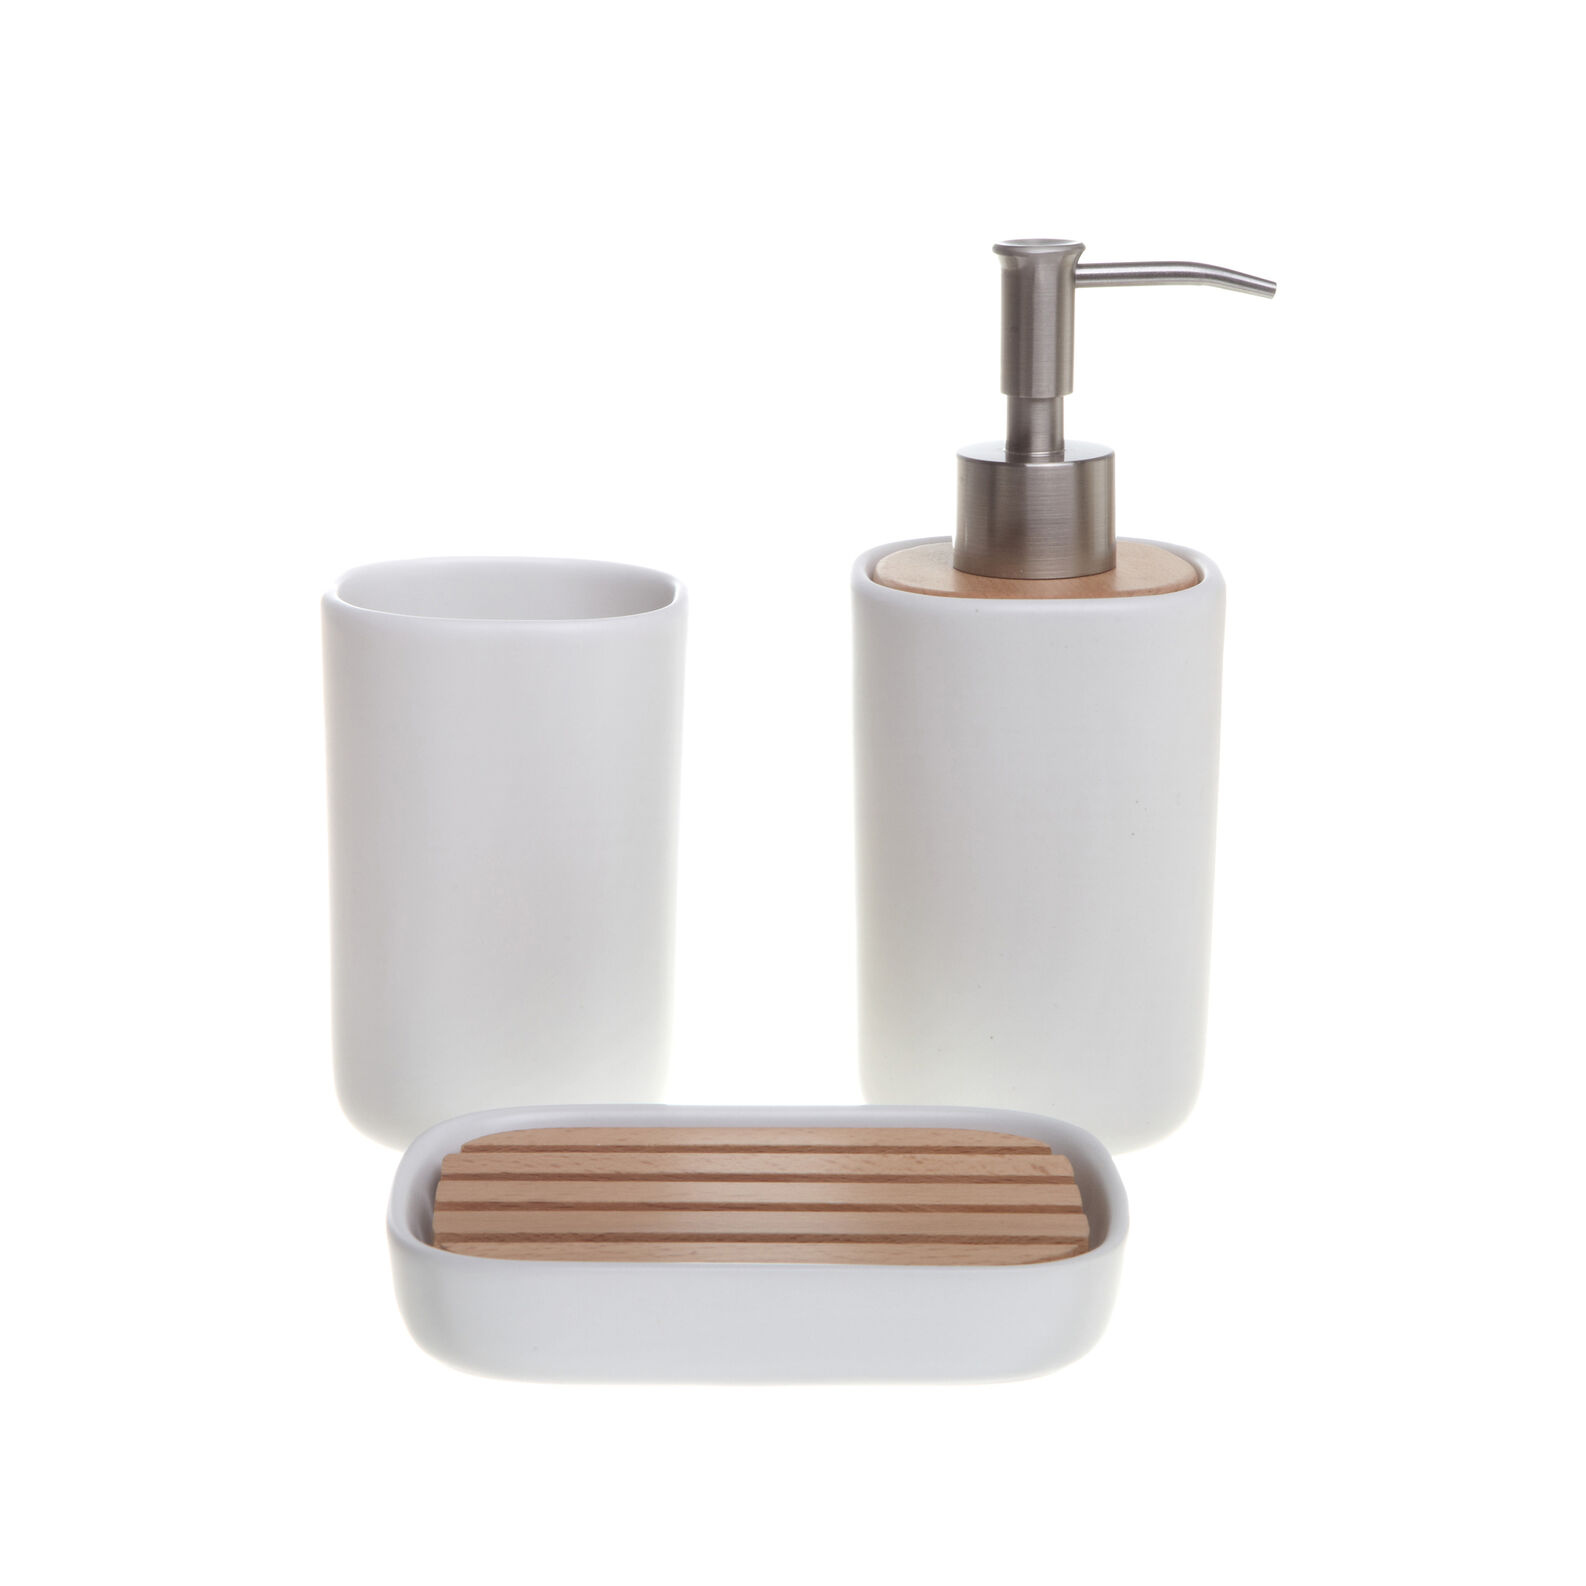 Loft ceramic toothbrush holder